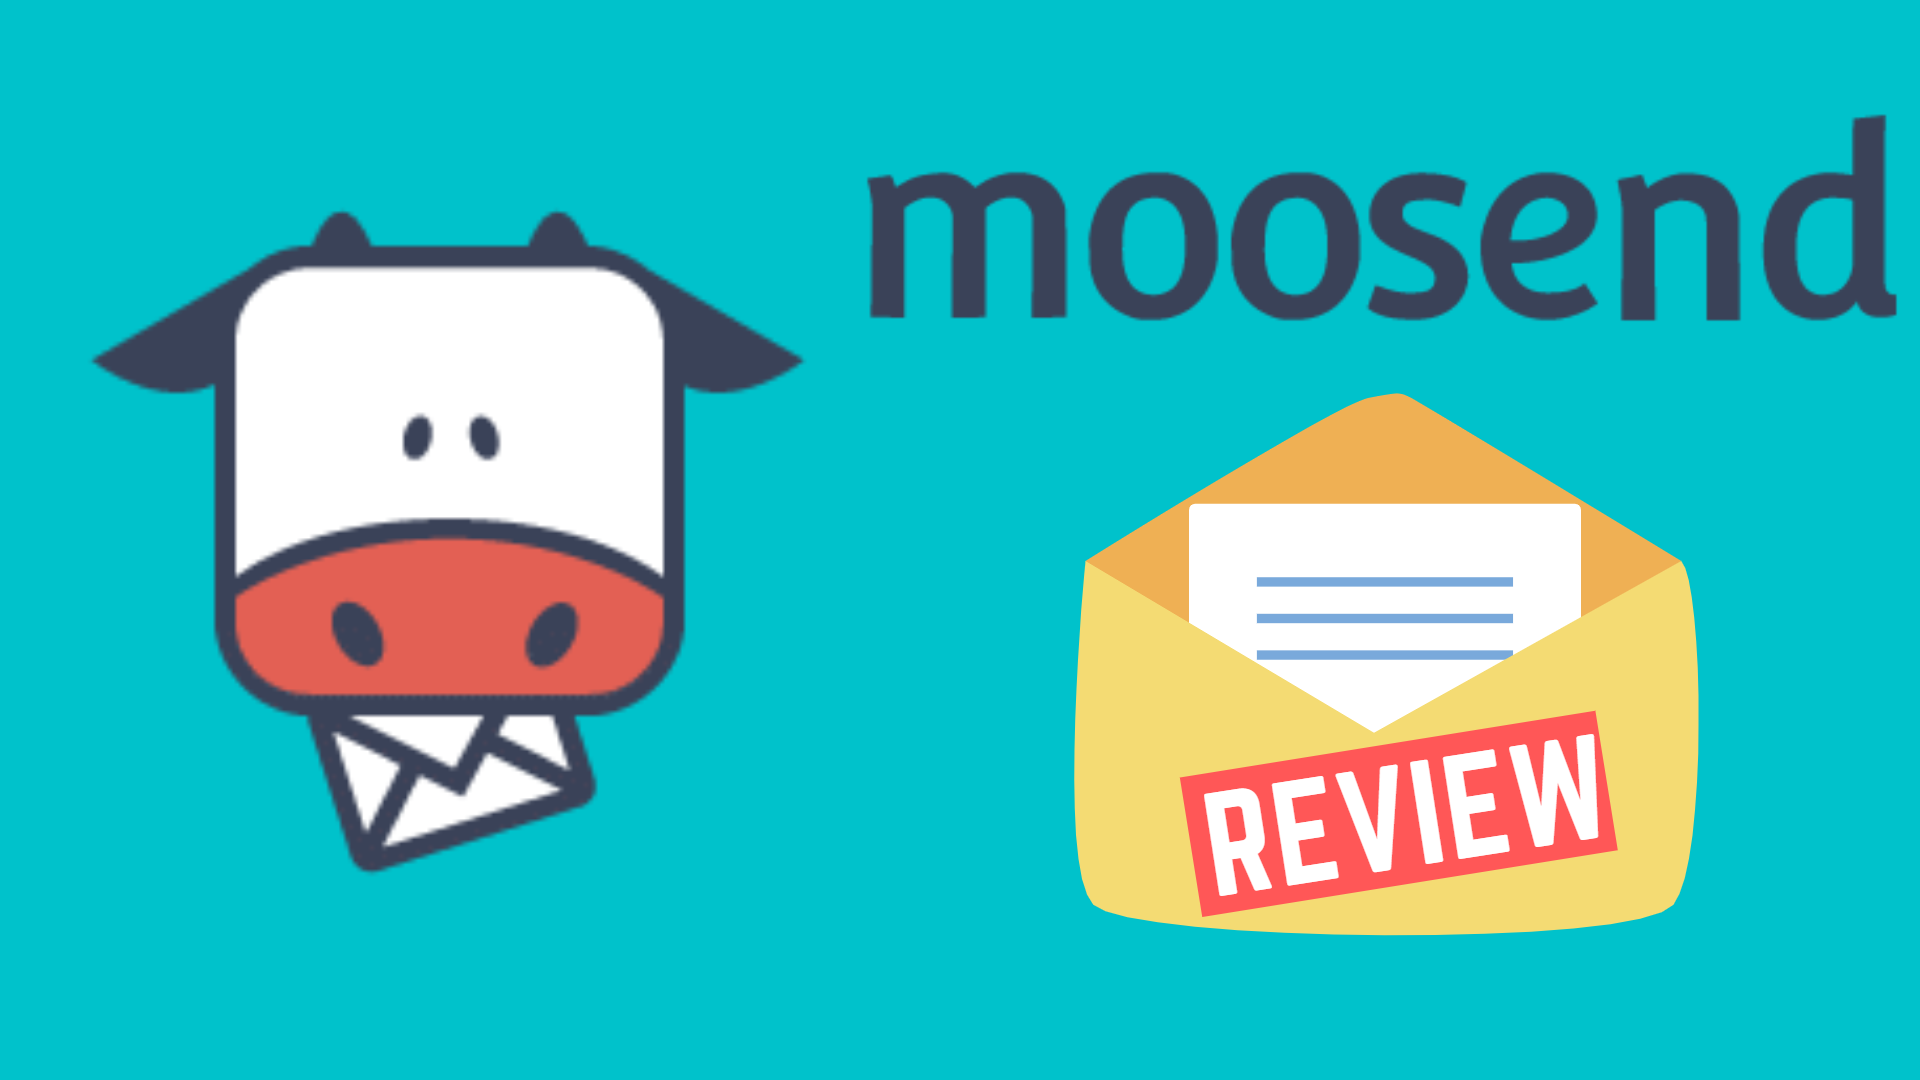 Learn About Moosend Features Their Pricing And What Is So Special About Moosend Review